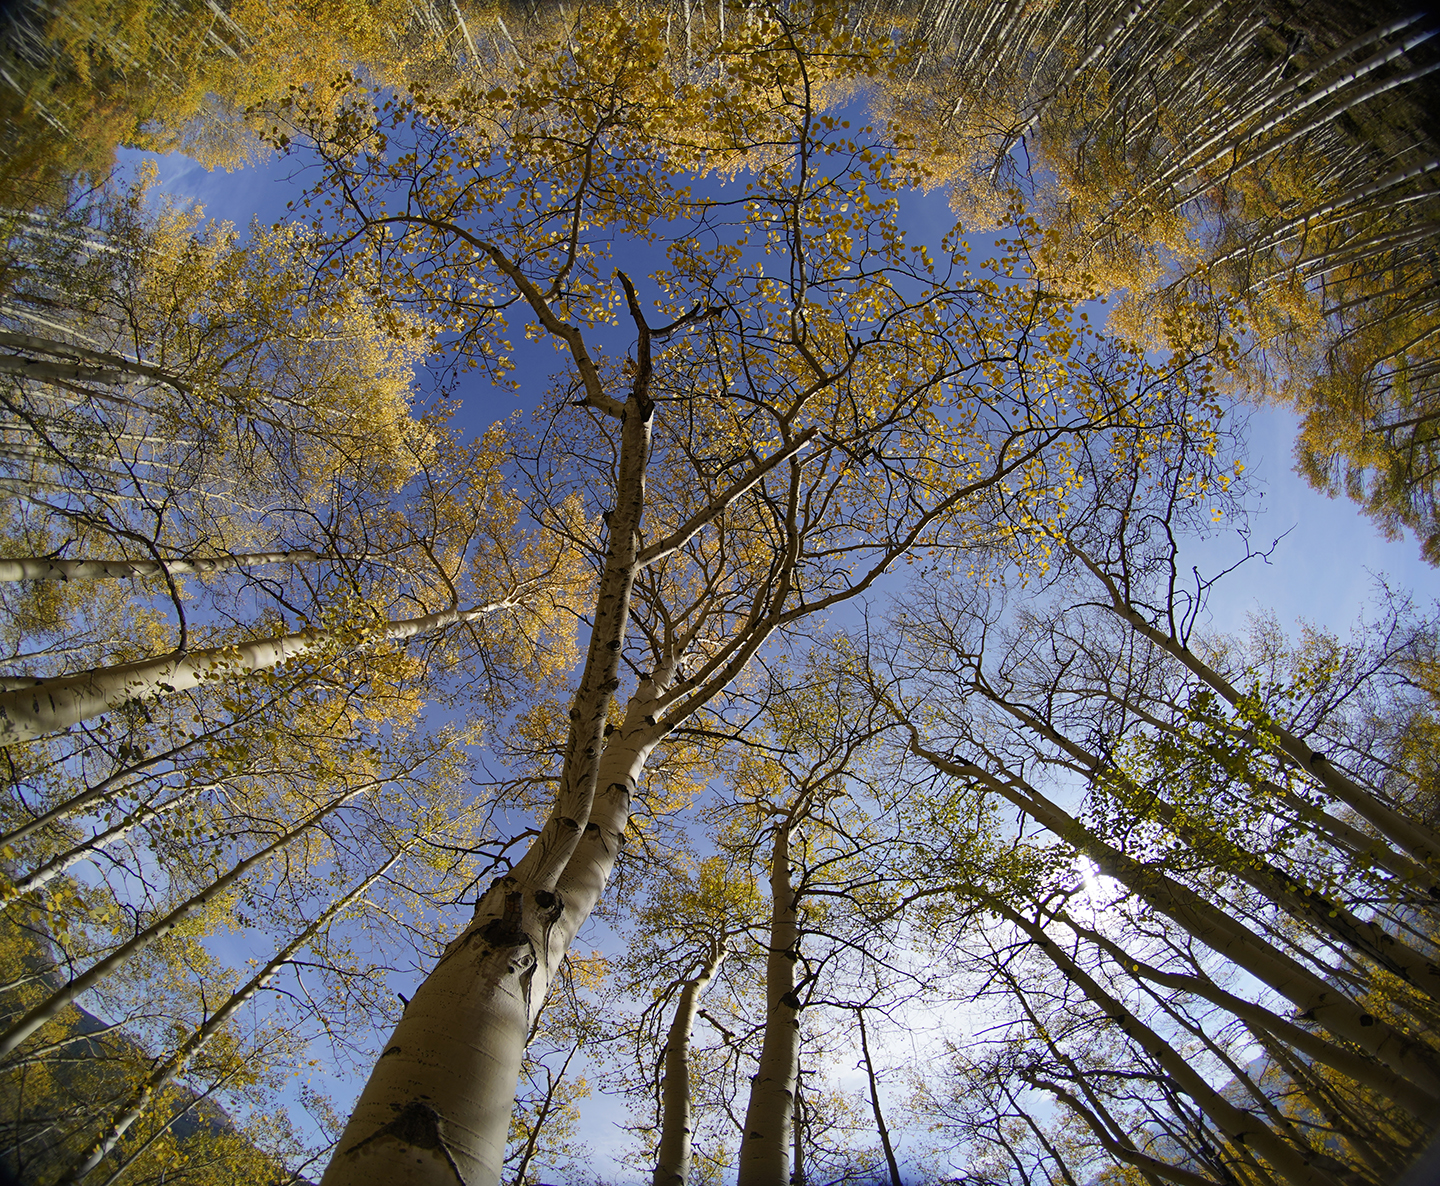 Looking up to the Aspens